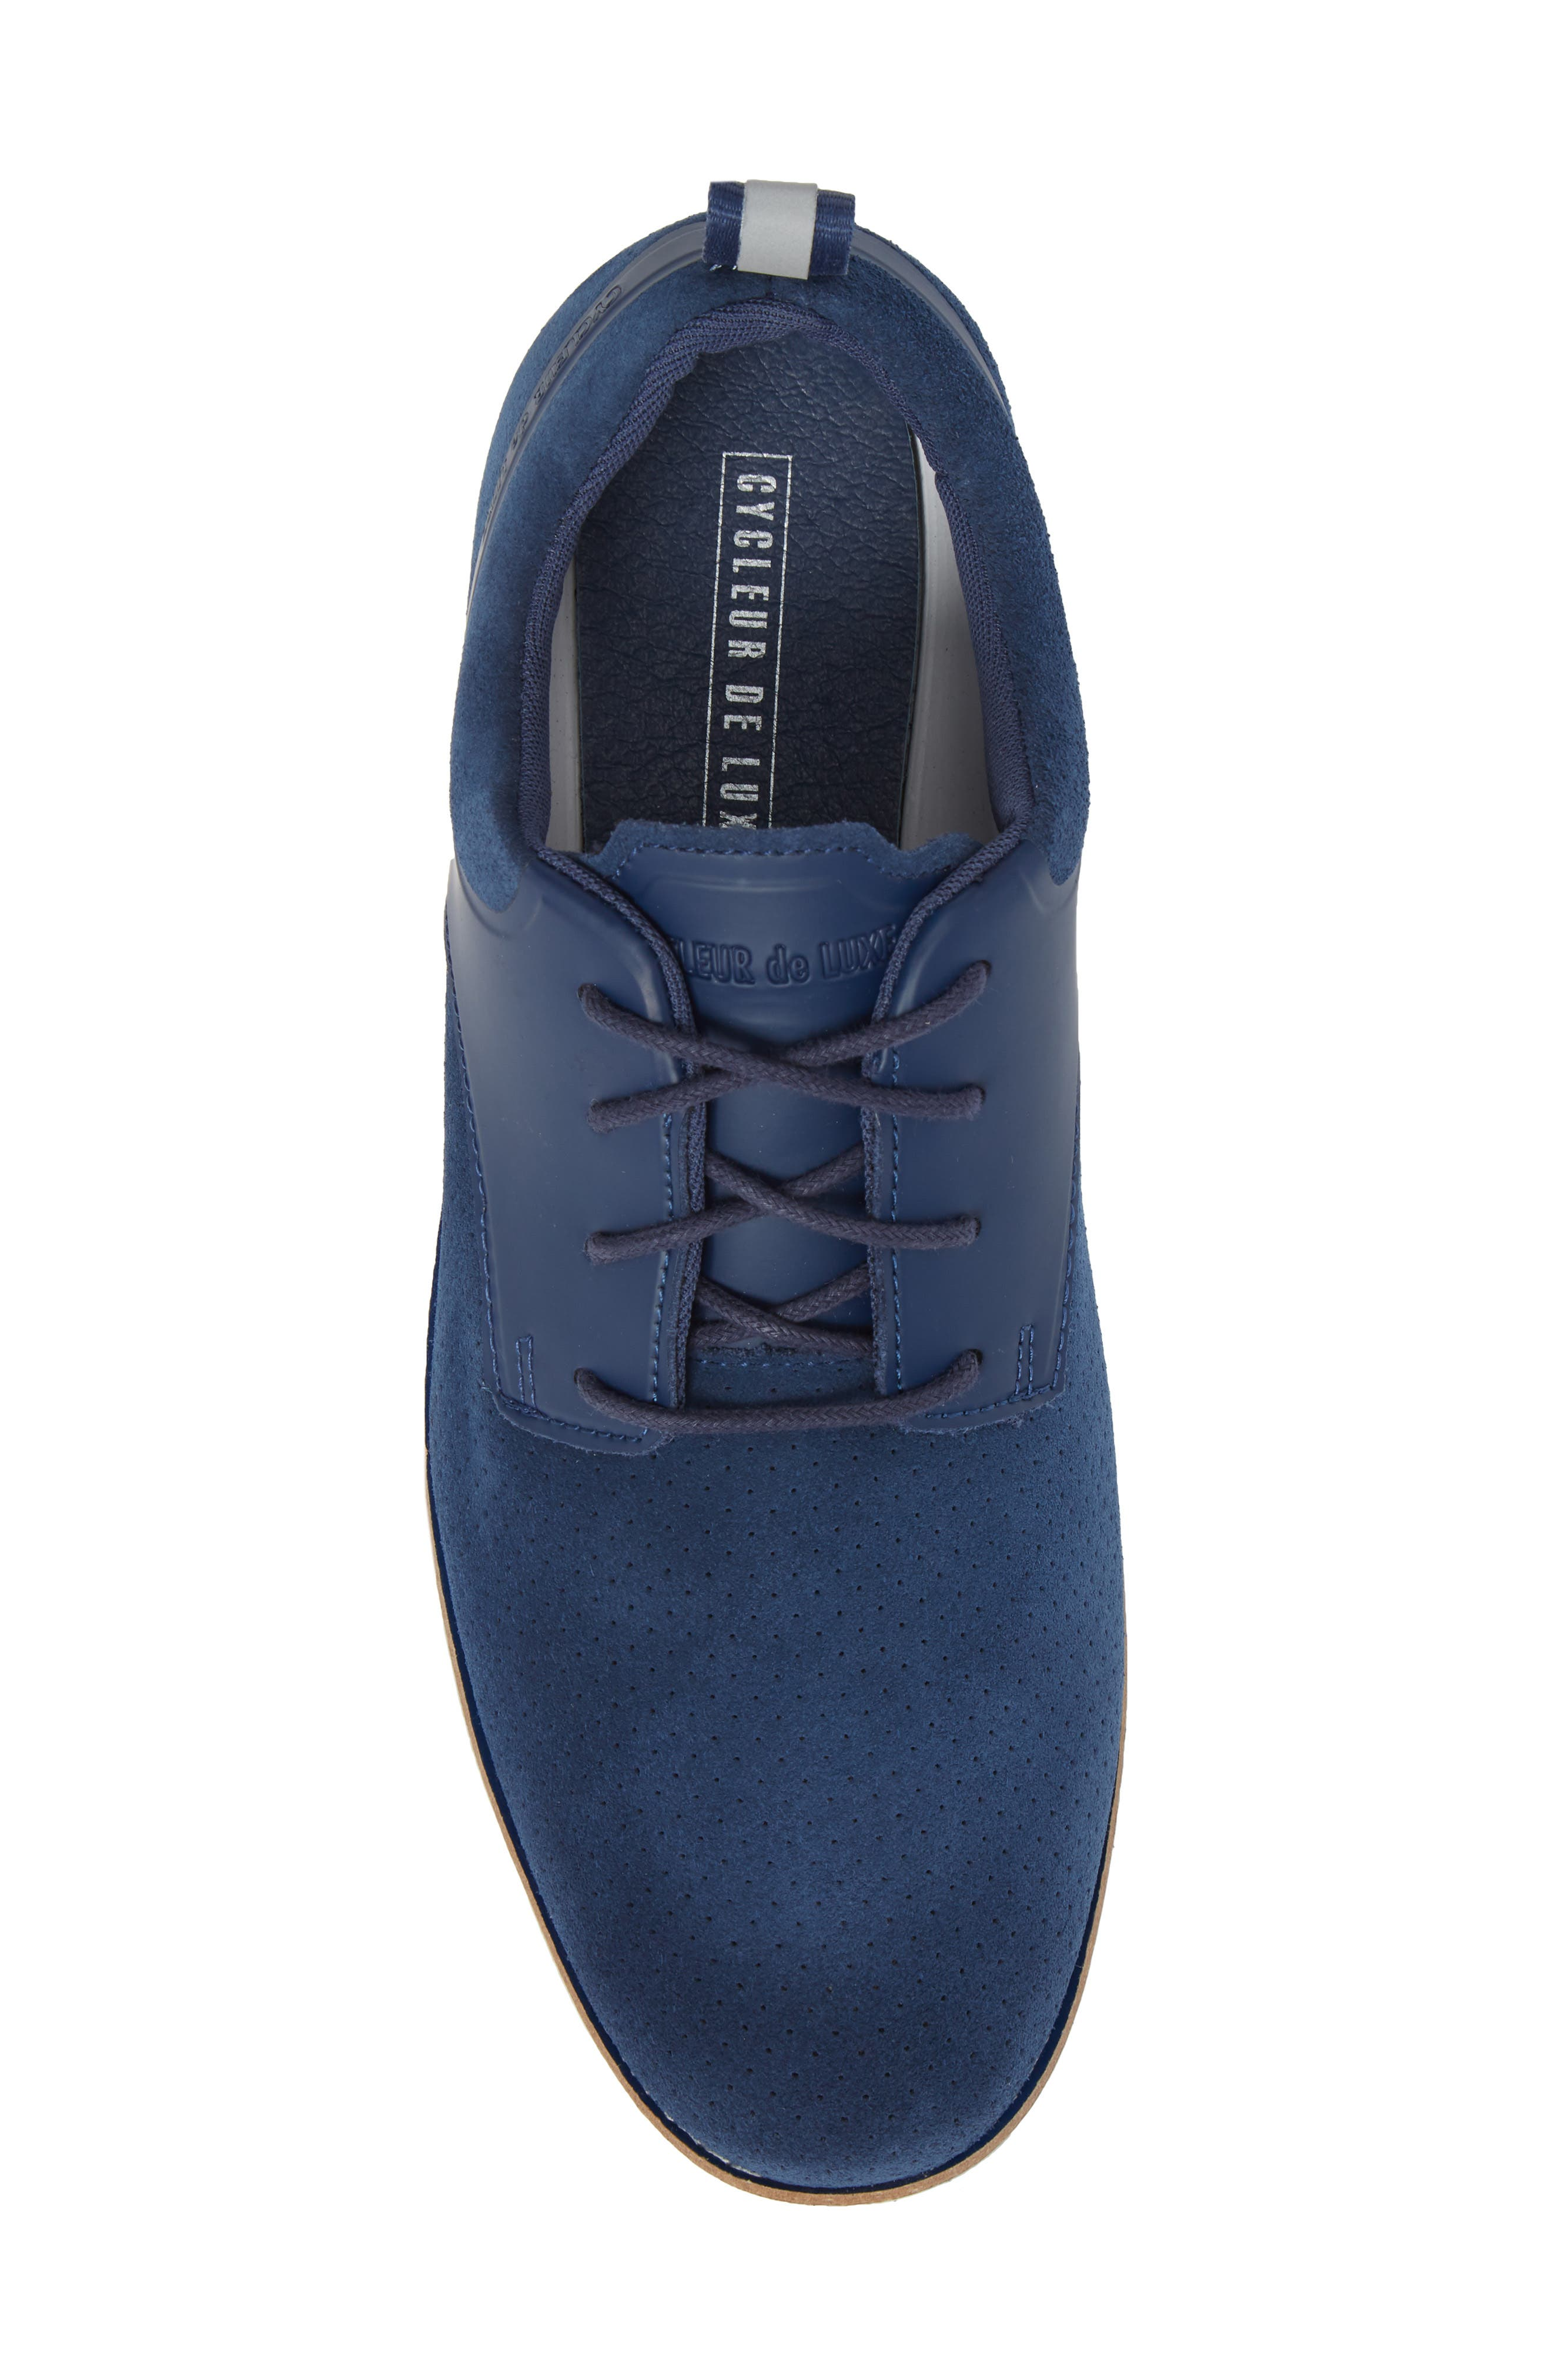 Ridley Perforated Low Top Sneaker,                             Alternate thumbnail 5, color,                             NAVY LEATHER